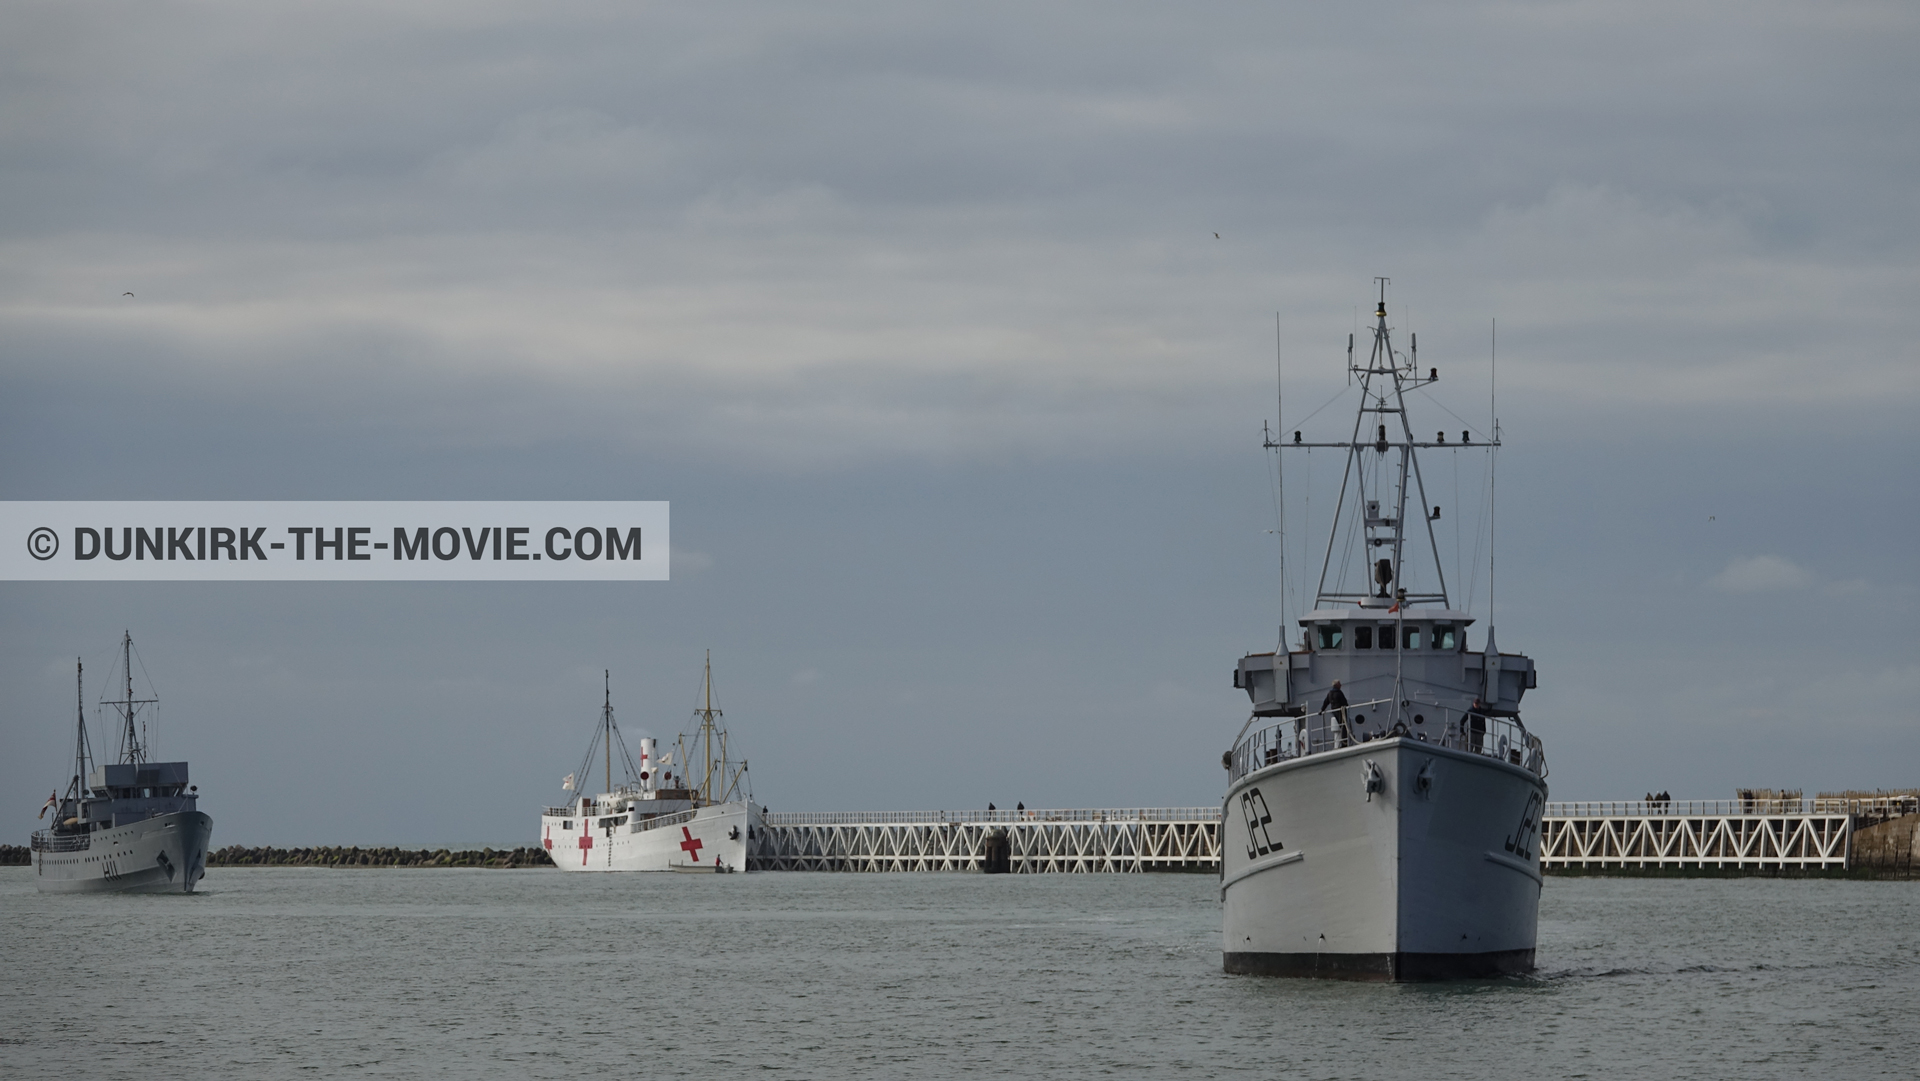 Picture with boat, cloudy sky, H11 - MLV Castor, J22 -Hr.Ms. Naaldwijk, EST pier, calm sea, M/S Rogaland,  from behind the scene of the Dunkirk movie by Nolan